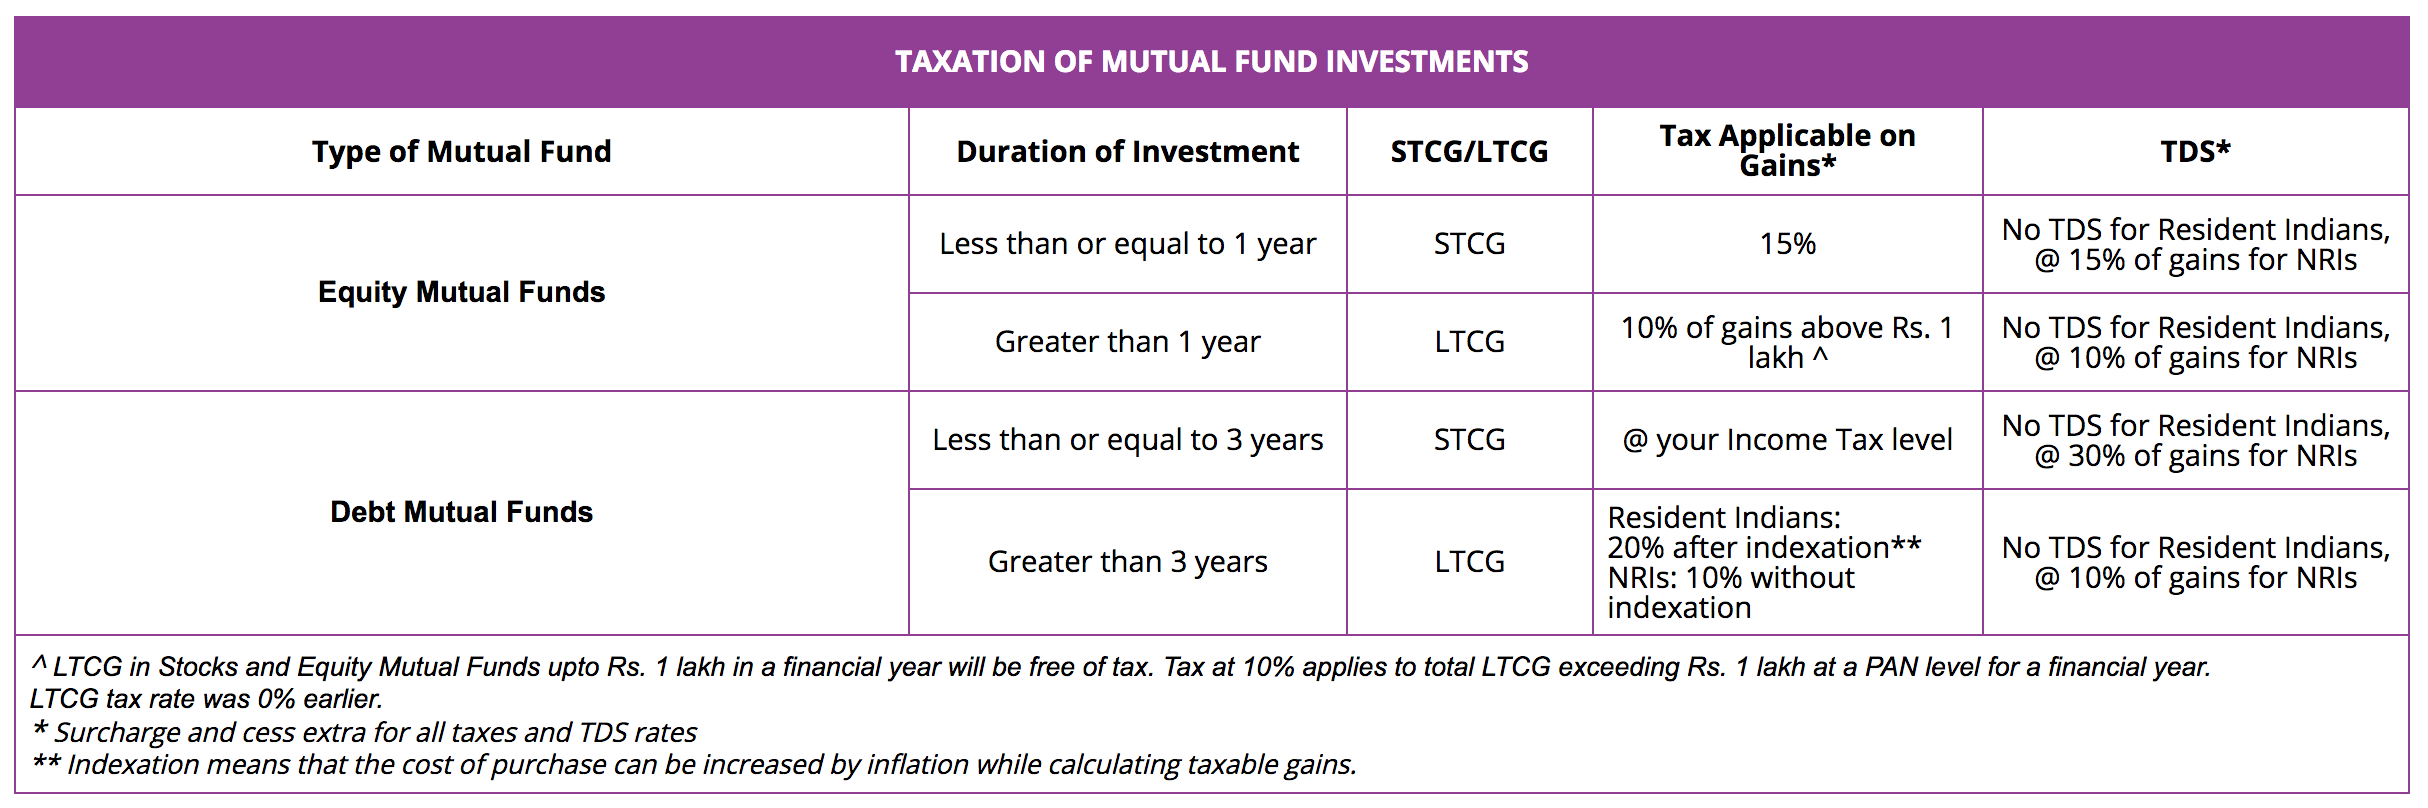 Mutual fund investment costs deductions sammy bockelman investments